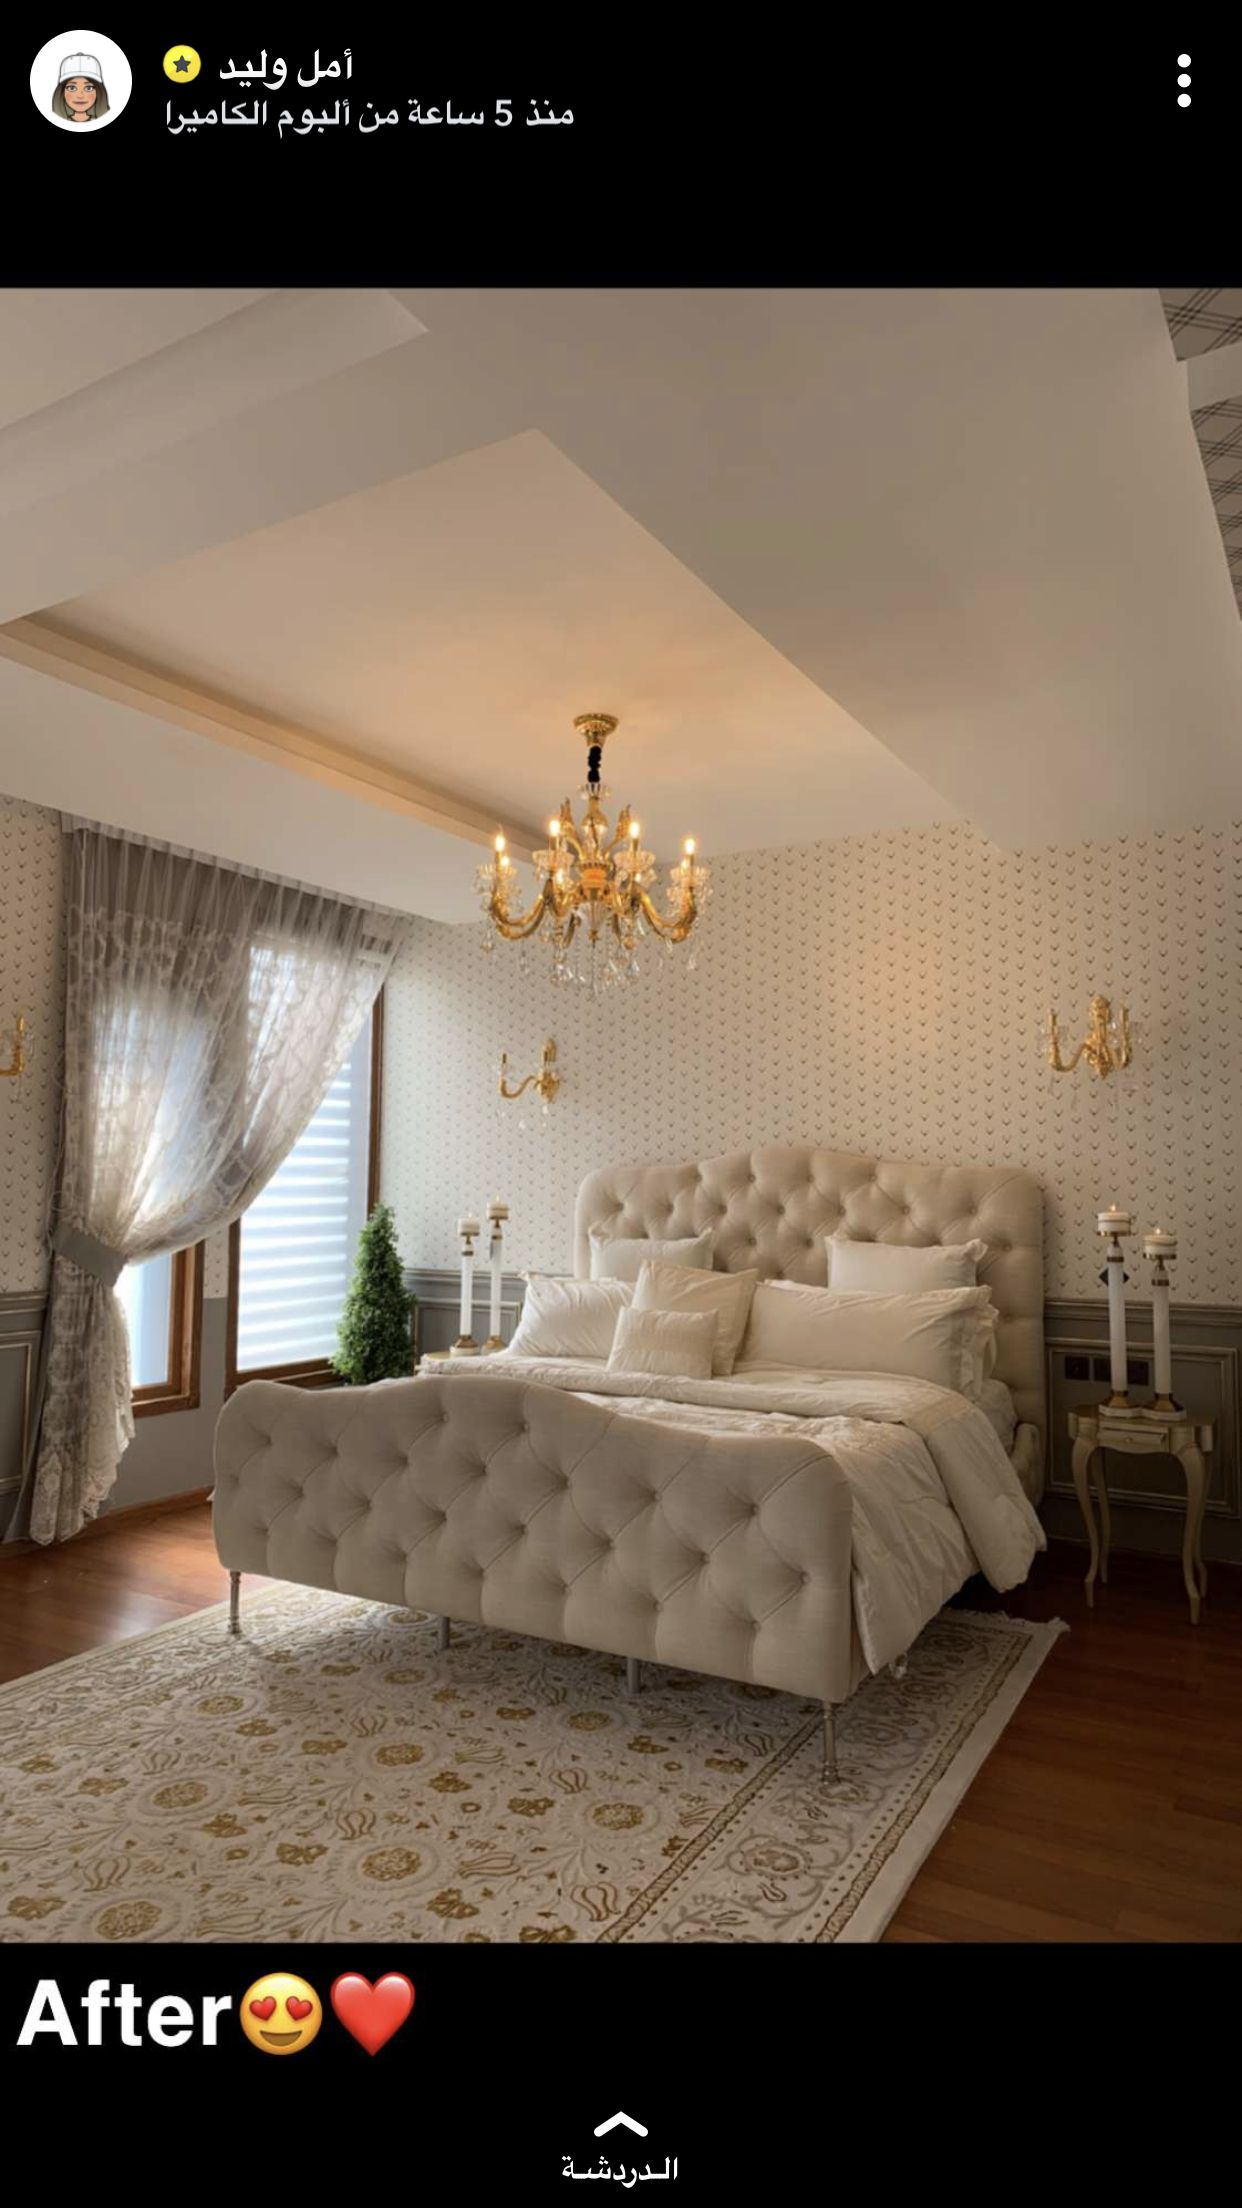 Pin By Nouf Abdullah On غرفتي Master Room Master Bedrooms Decor Home Design Living Room Home Design Decor